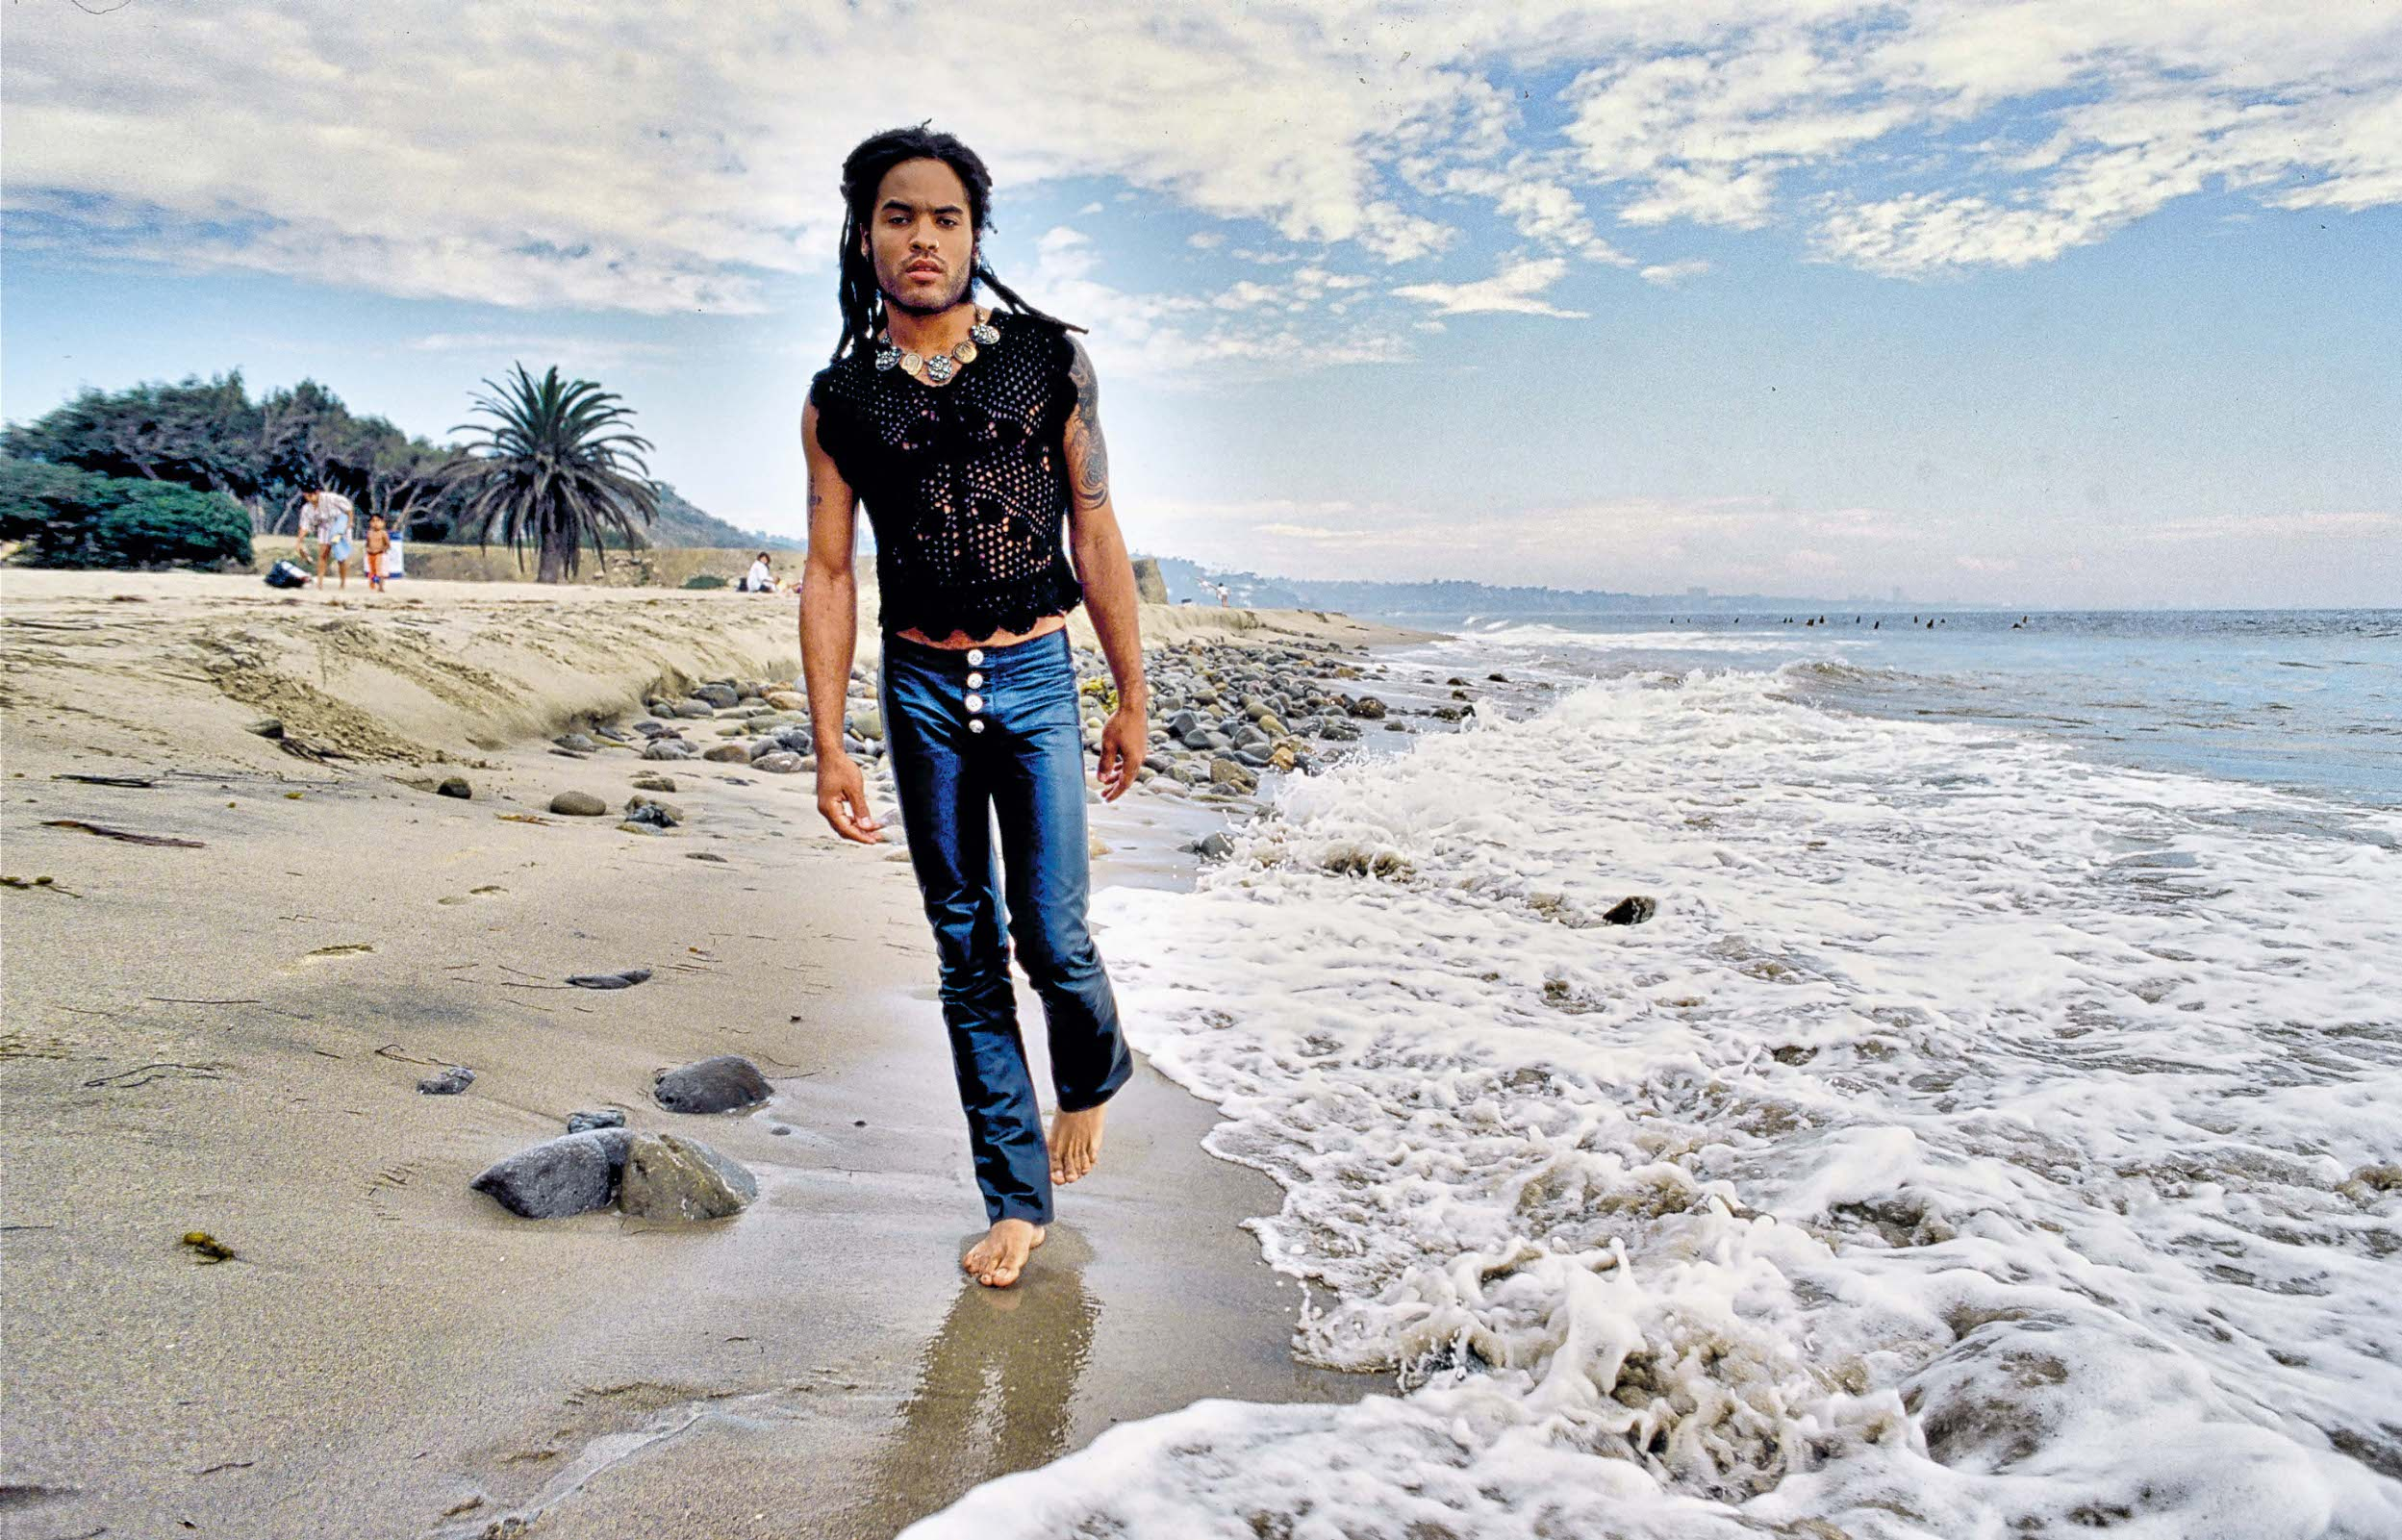 MALIBU, CA - SEPTEMBER 16 : Leonard AlbertKravitz, known as Lenny Kravitz(born May 26, 1964) is an American singer, songwriter, actor and record producer. Photographed near his home September 16, 1991 in Malibu, California (Photo by Paul Harris/Getty Images)